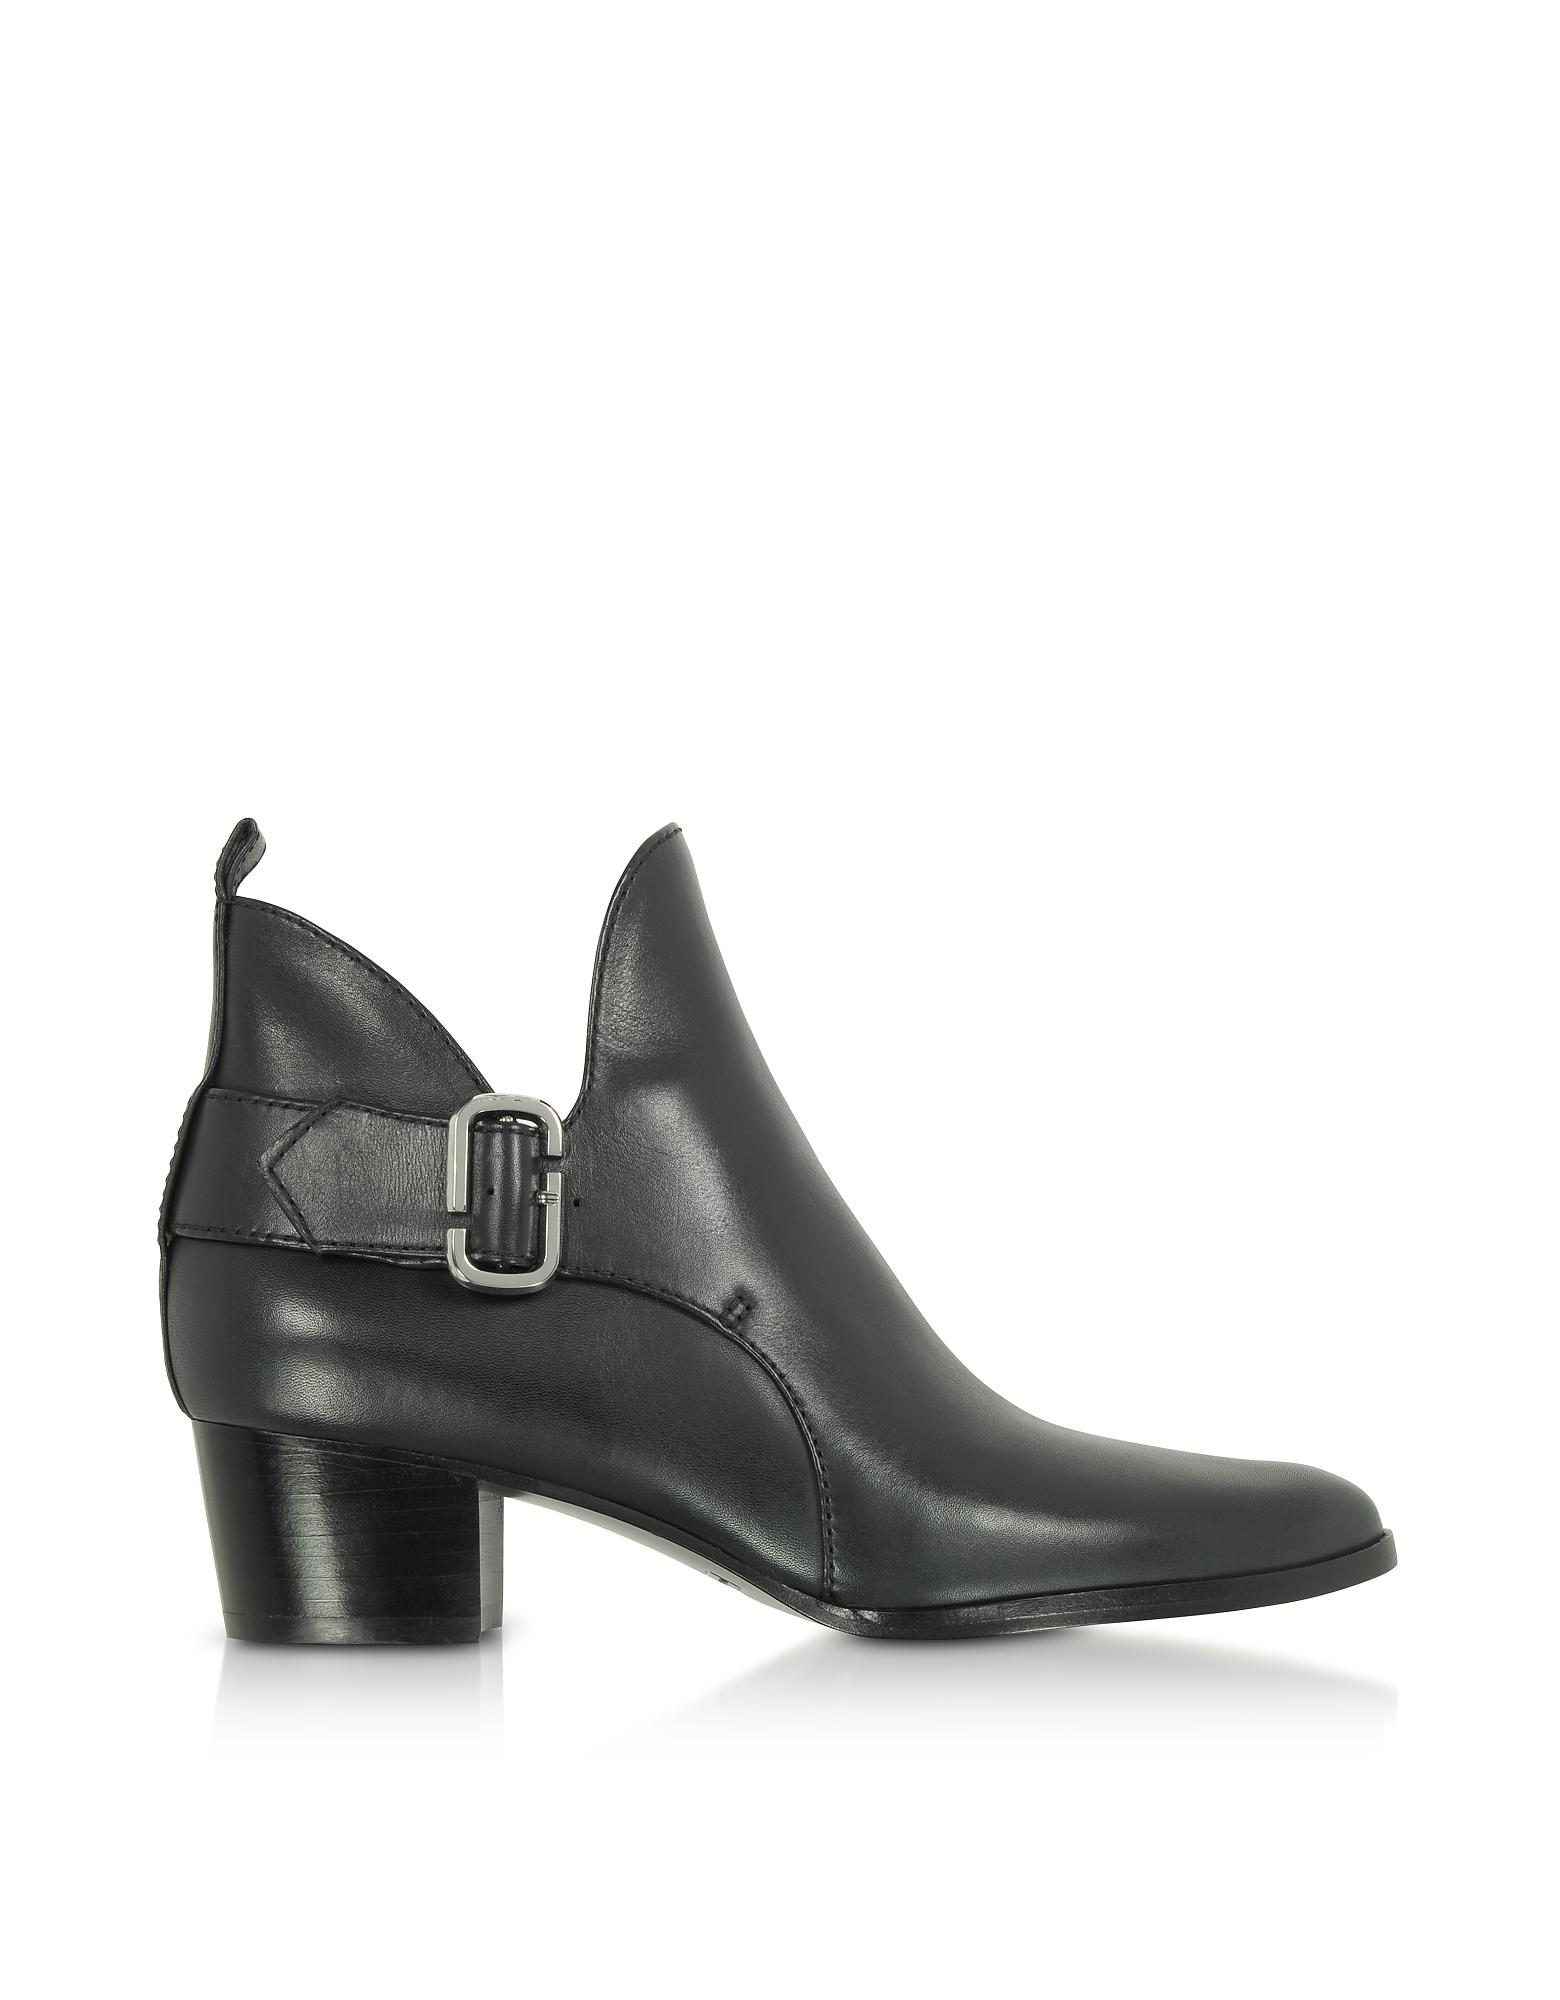 Marc Jacobs Shoes, Leather Ginger Interlock Ankle Boots